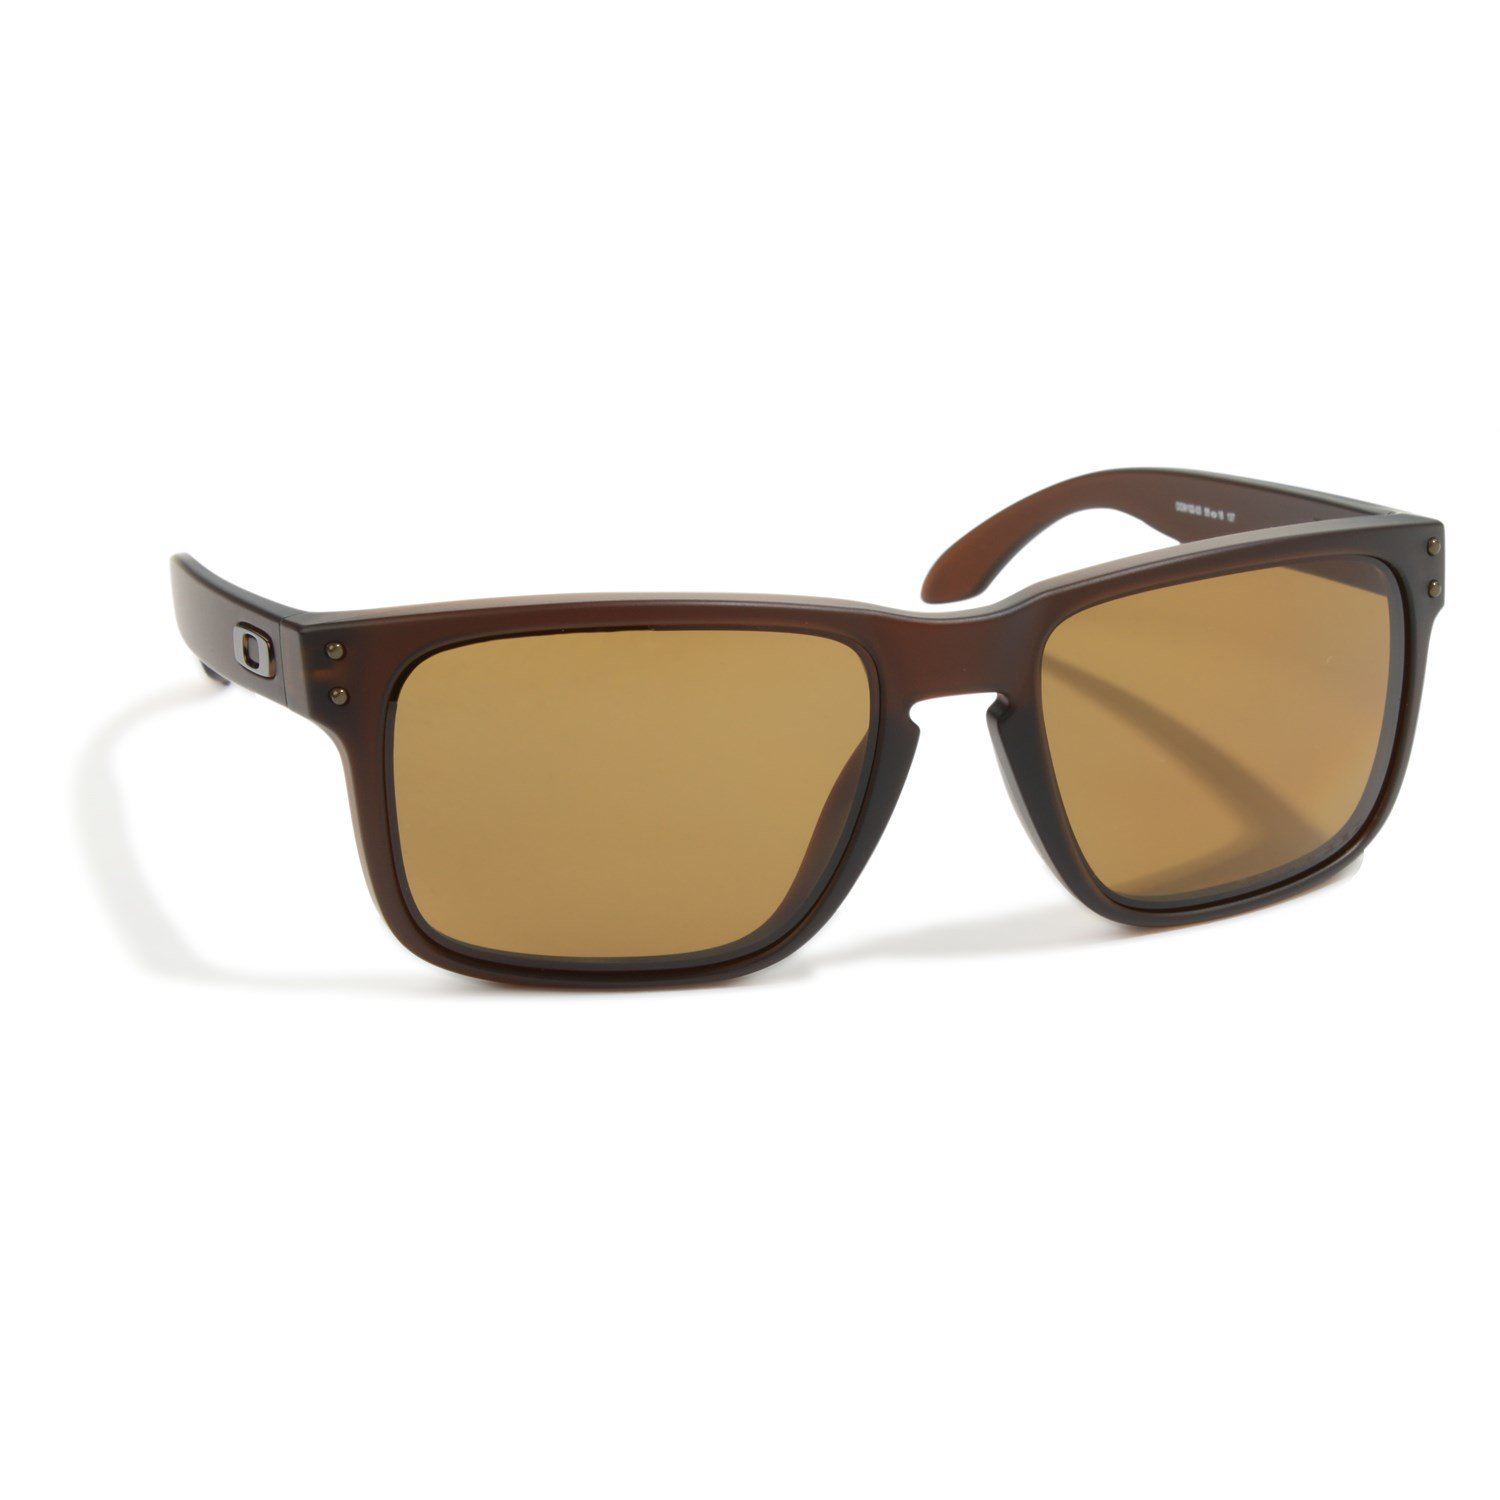 oakley holbrook sunglasses review  oakley holbrook sunglasses matte rootbeer bronze polarized front